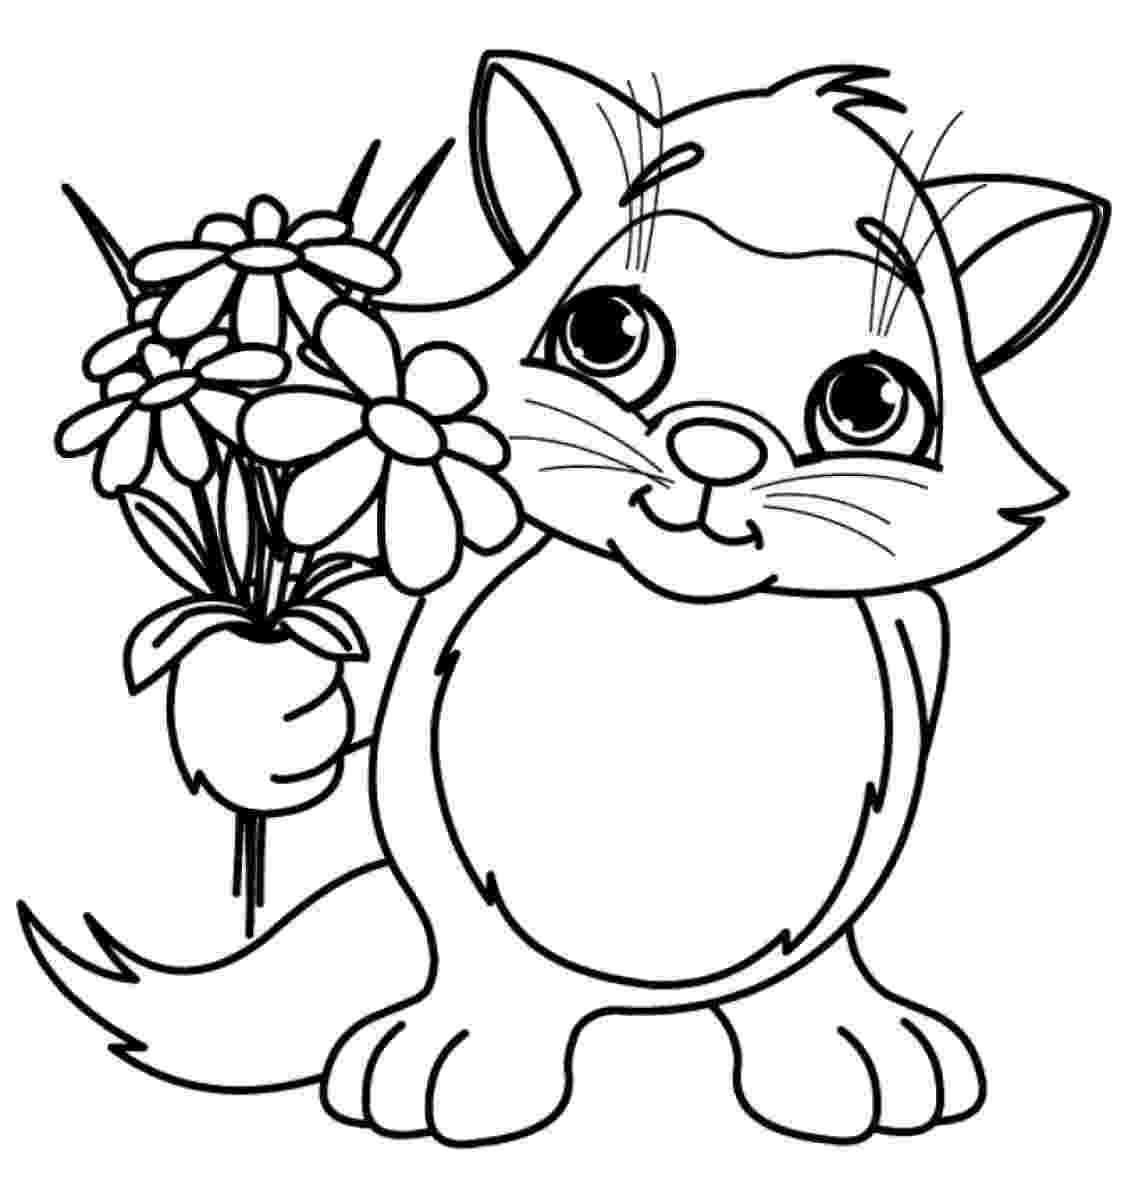 coloring flower pictures free printable flower coloring pages for kids best coloring flower pictures